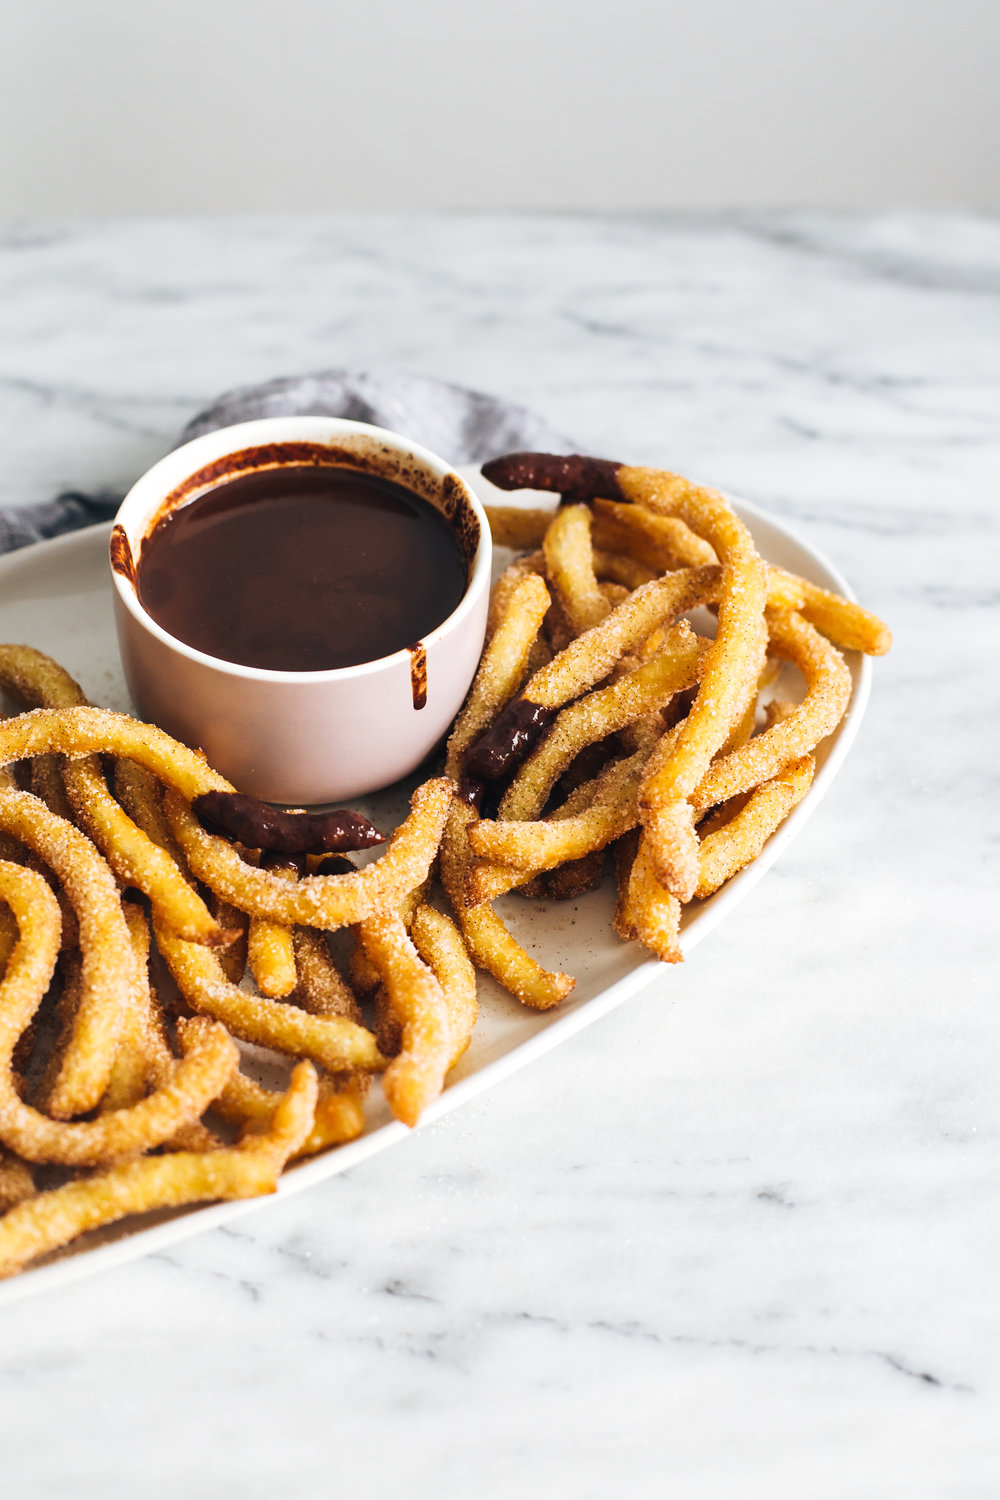 churro_fries_spicy_chocolate_dip-10.jpg